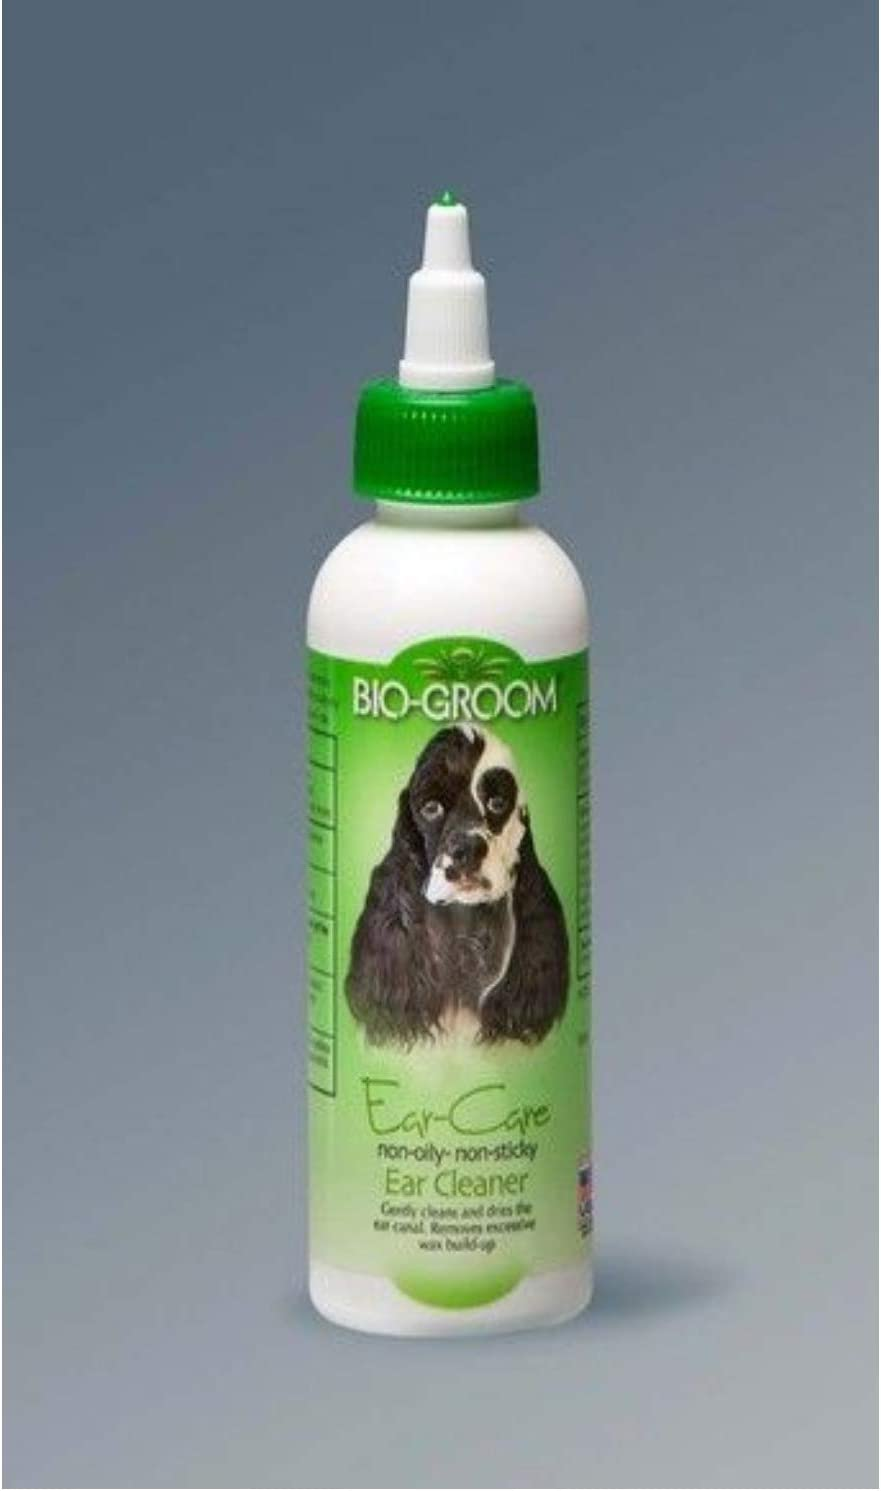 Bio-groom Ear Online limited product Cleaner 4 oz Pack 12 of - Ranking TOP3